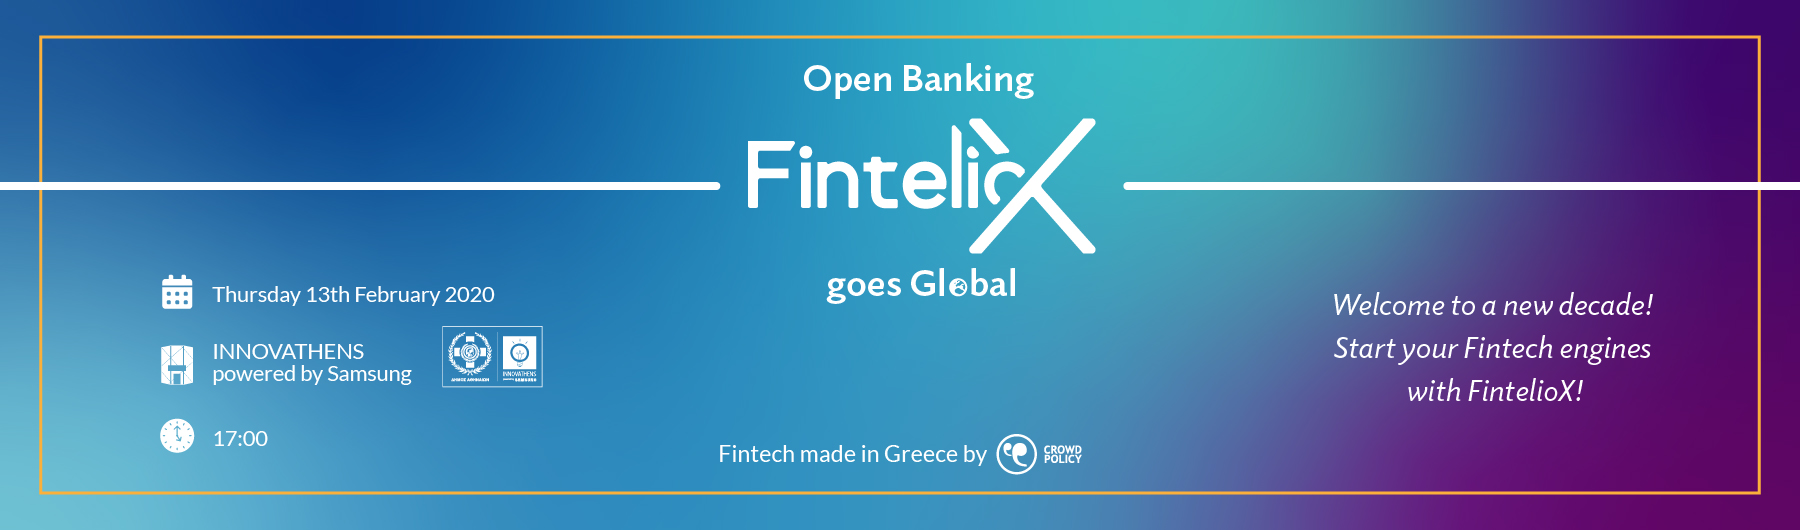 Open Banking FintelioΧ Goes Global powered by Crowdpolicy